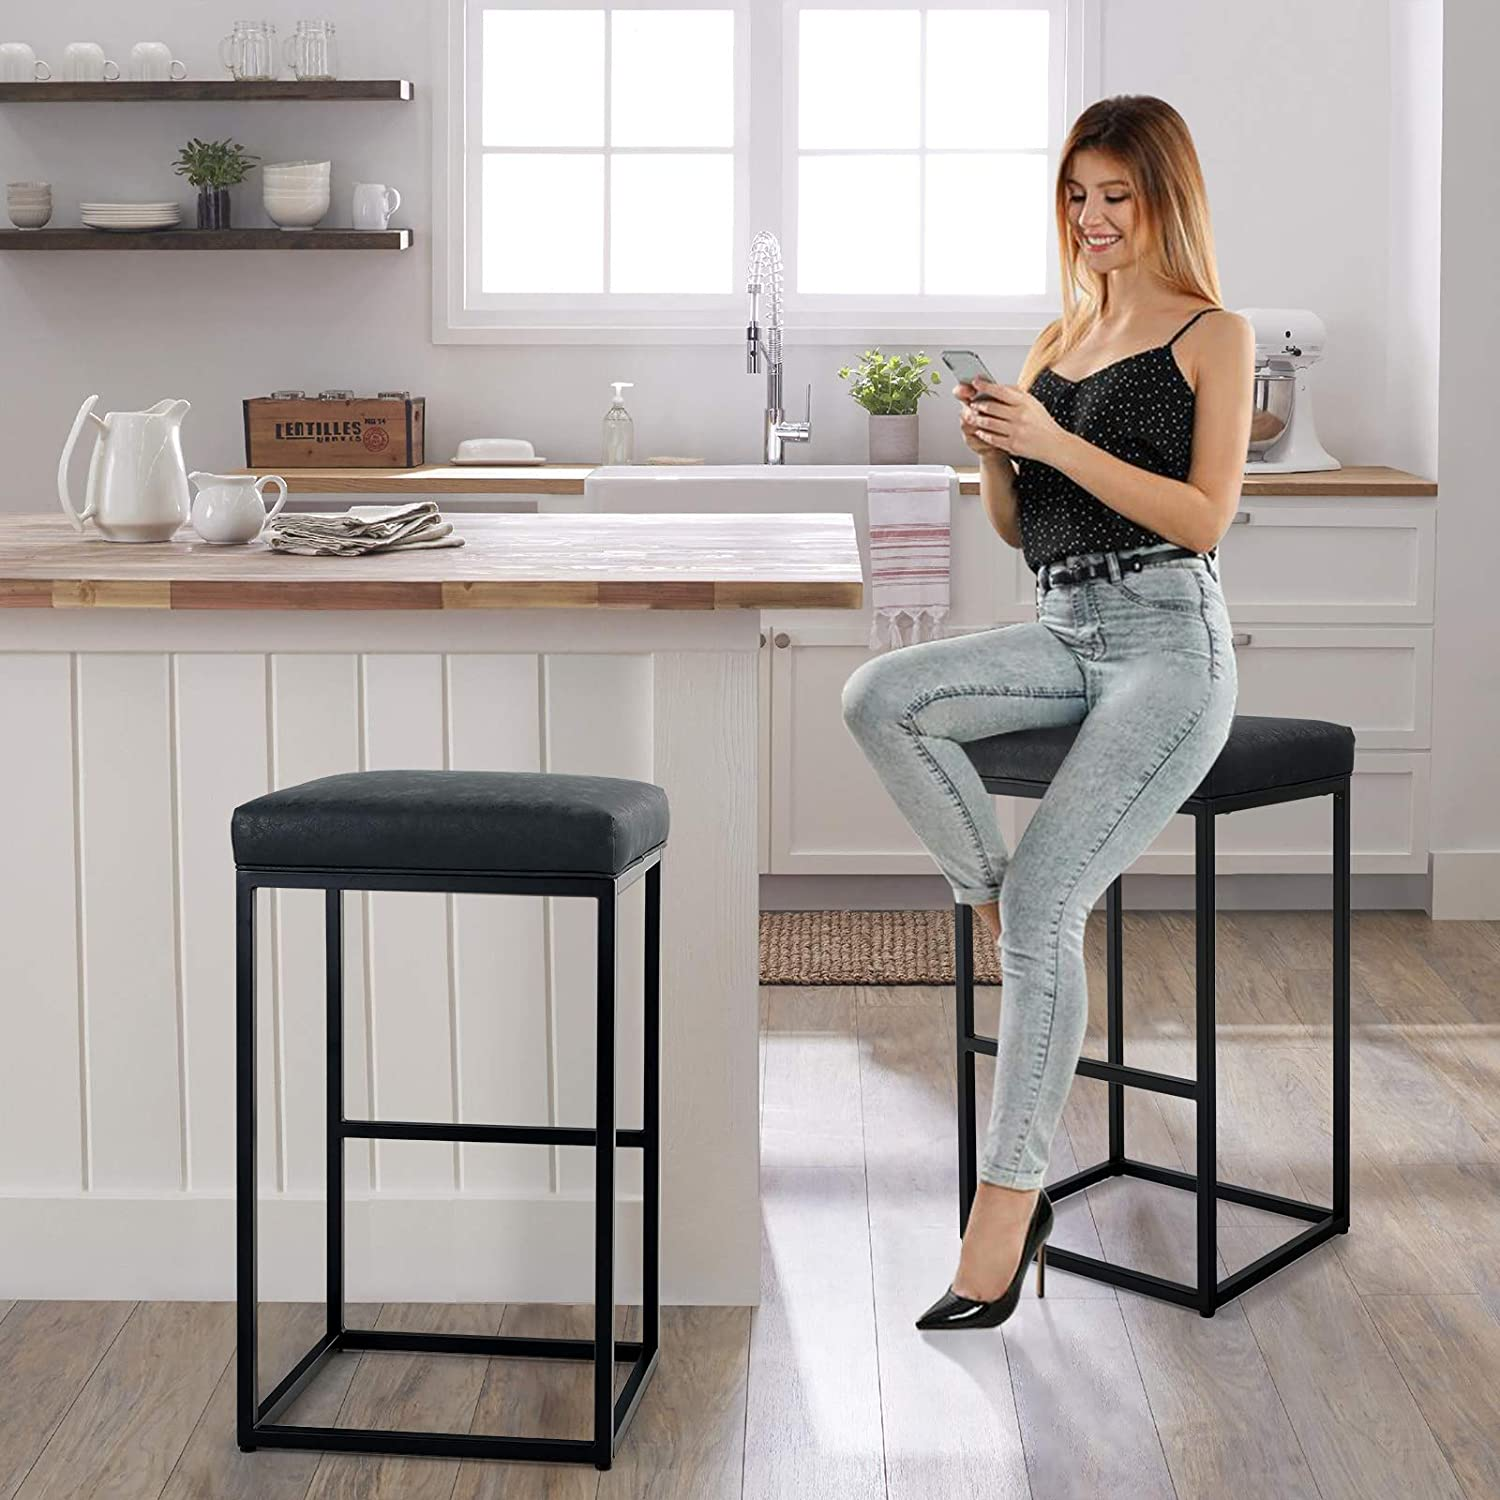 best backless industrial stool, metal backless bar stool with industrial style